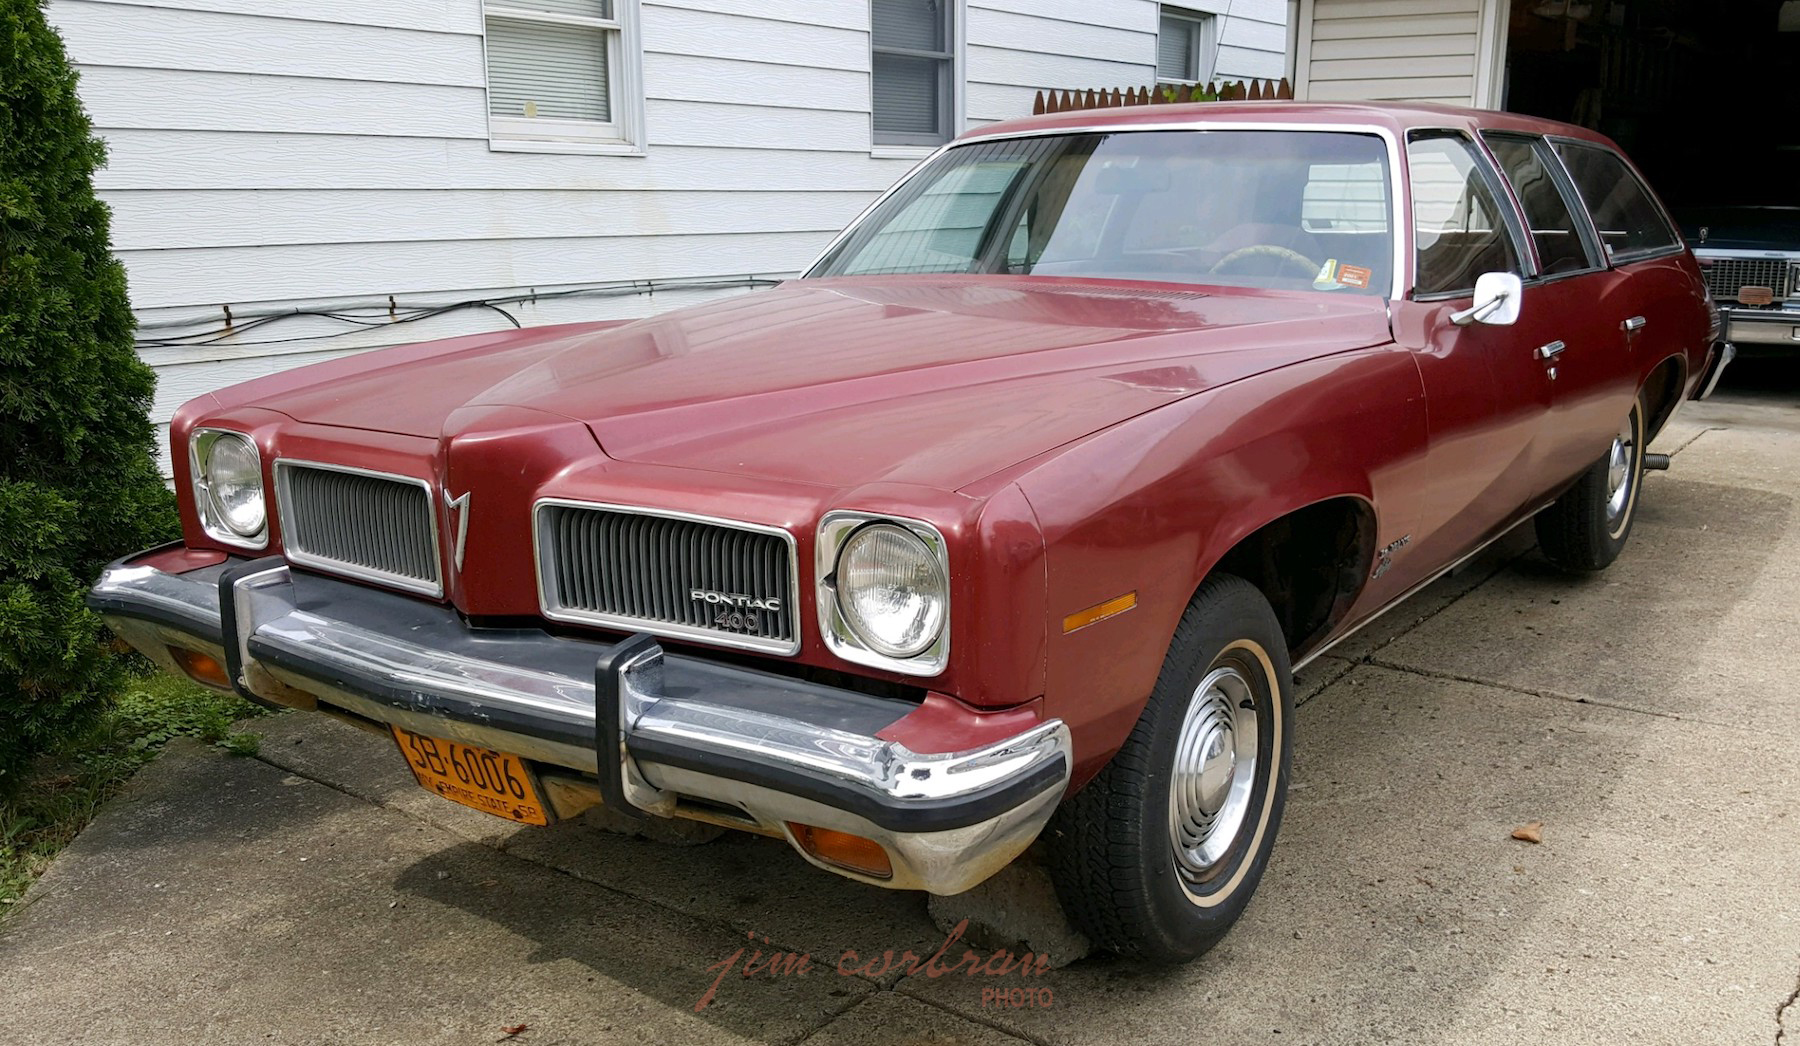 RealRides of WNY - 1973 Pontiac LeMans Safari